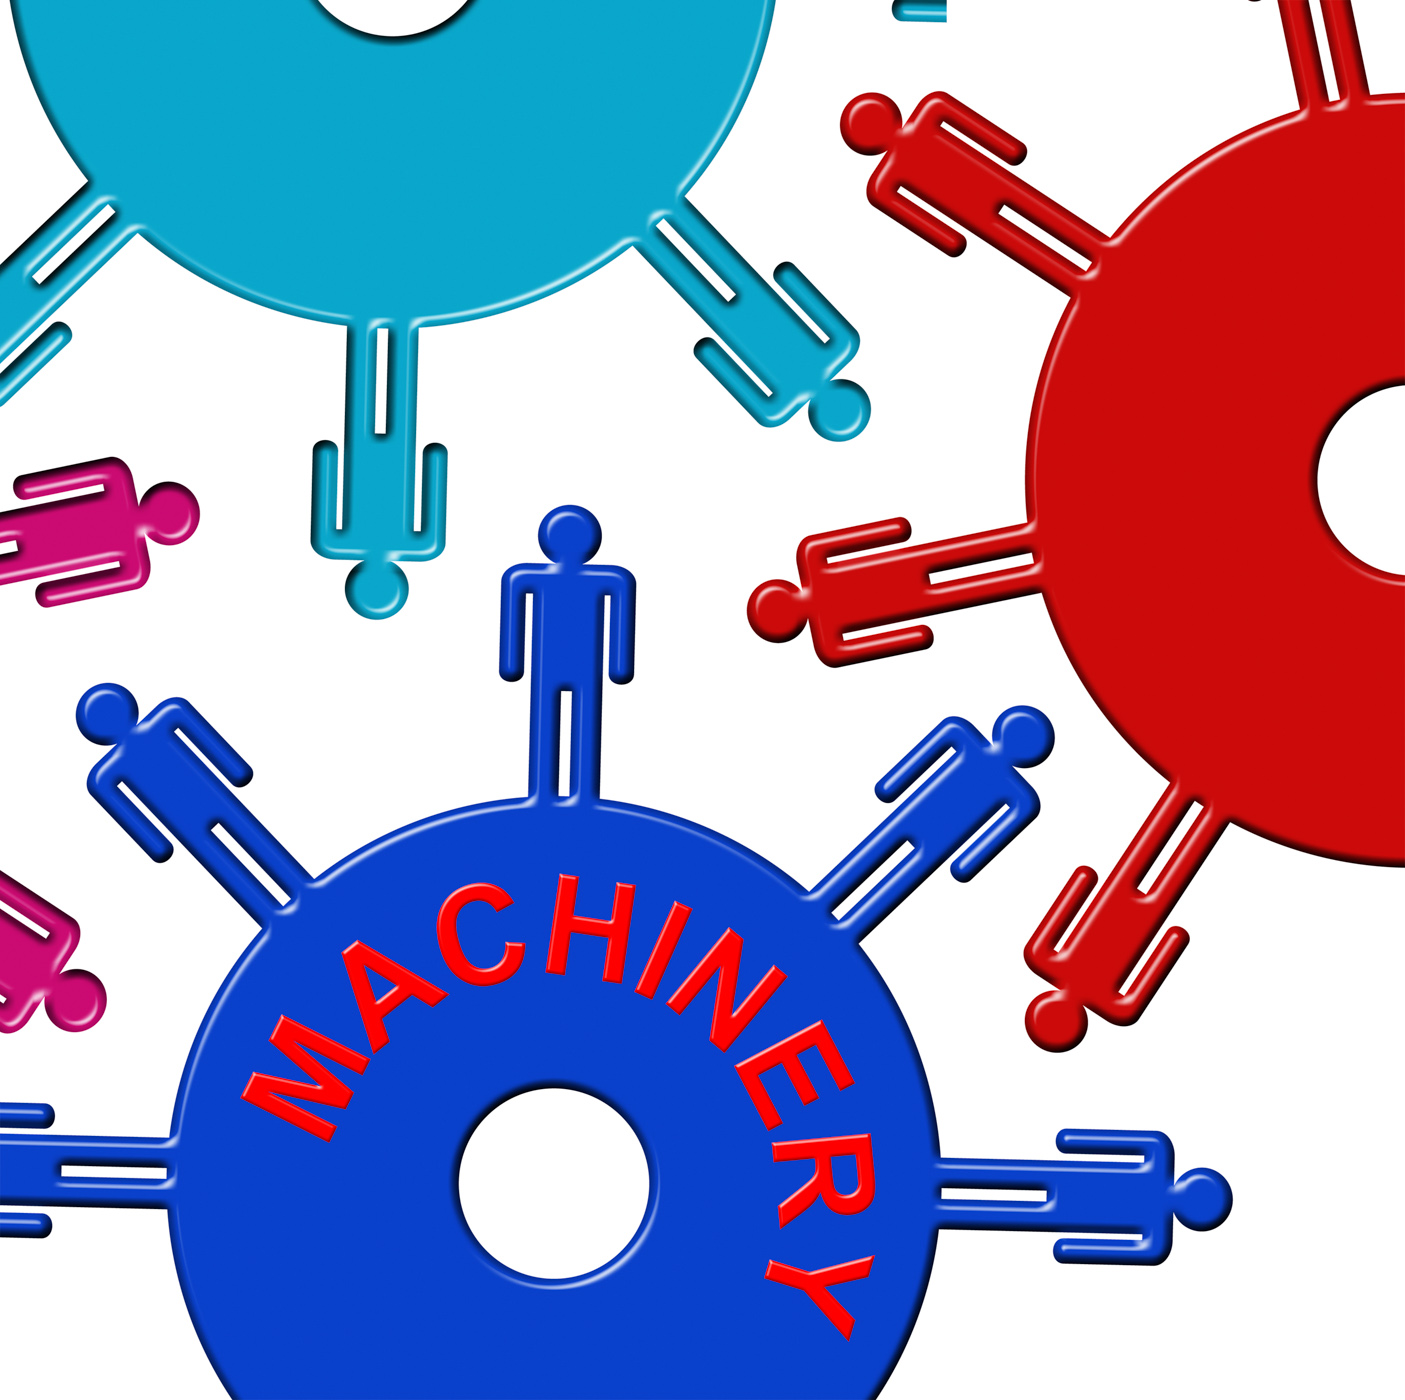 Machinery cogs shows factory wheel and workshop photo